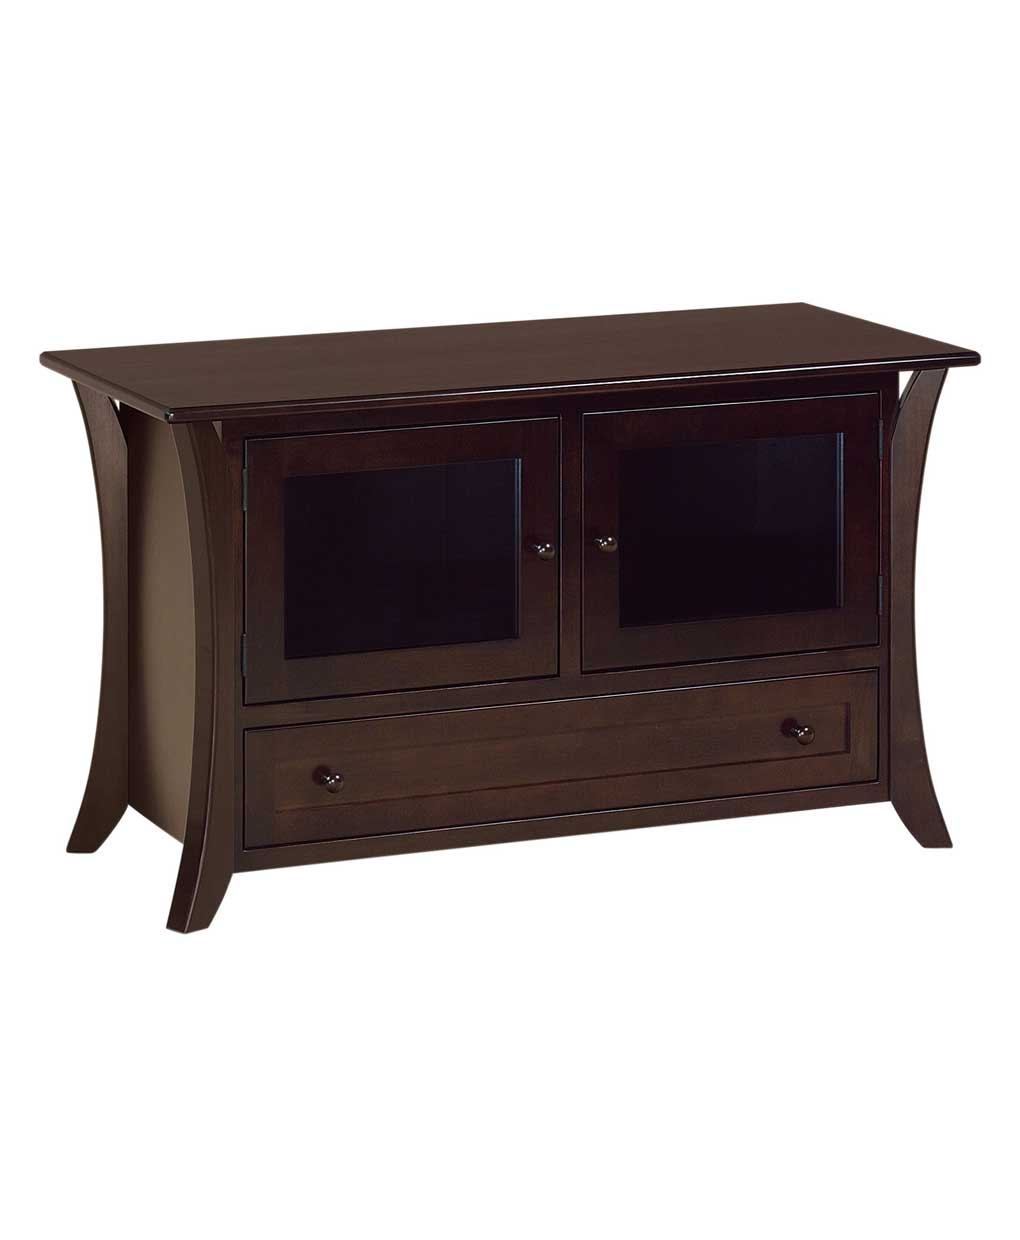 Tall Caledonia Tv Stand Amish Direct Furniture